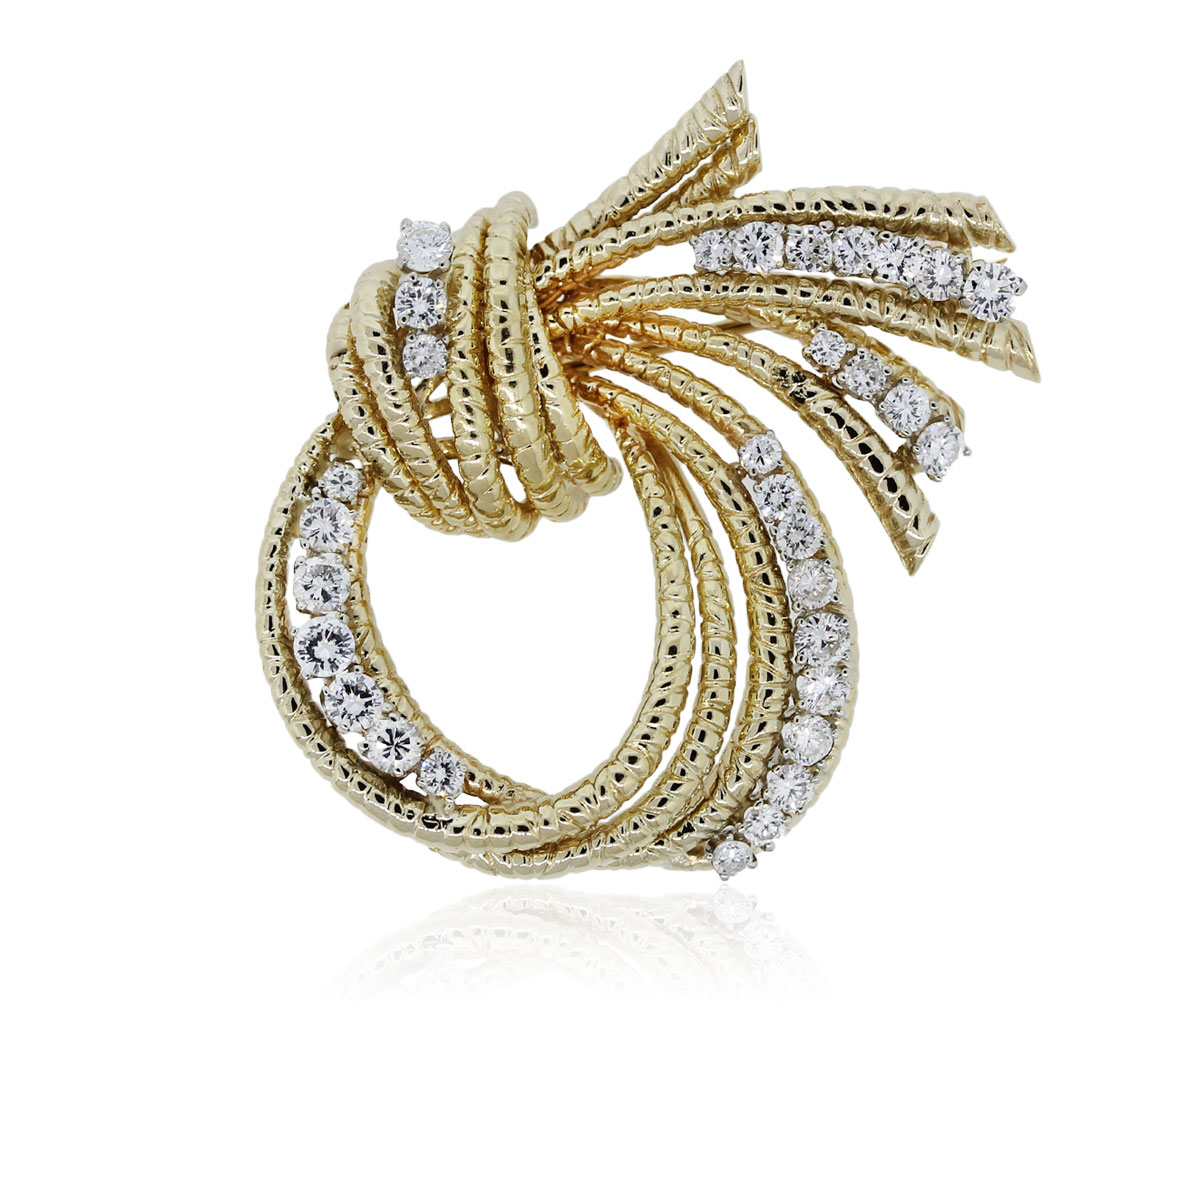 You are viewing this 18k Yellow Gold and Diamond Knot Pin!